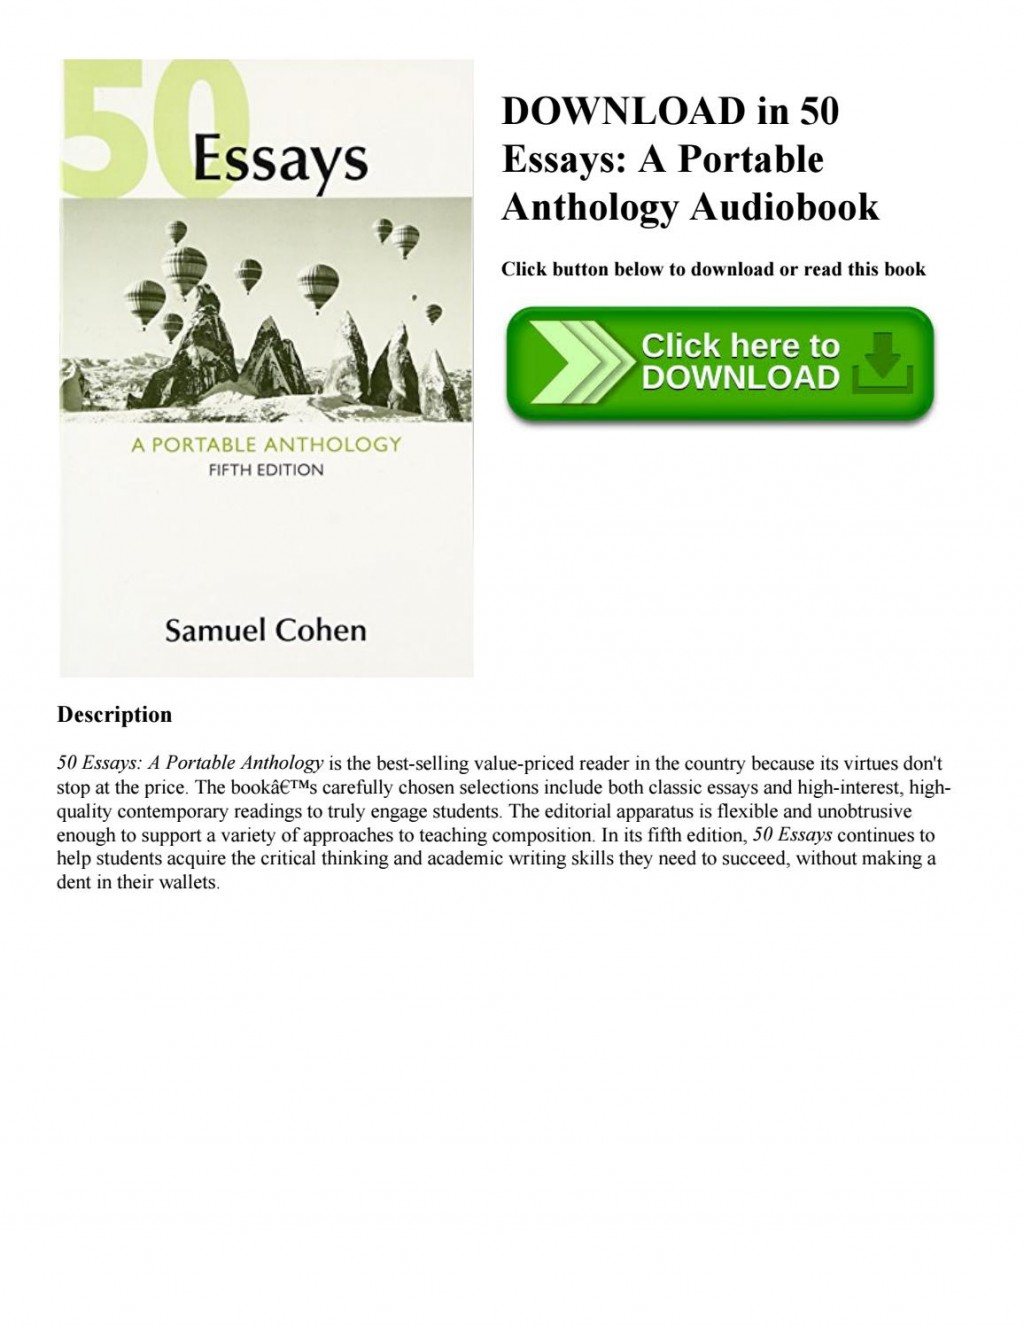 006 Essays 5th Edition Essay Example Page 1 Imposing 50 Fifty Great Pdf Free A Portable Anthology Ebook Large